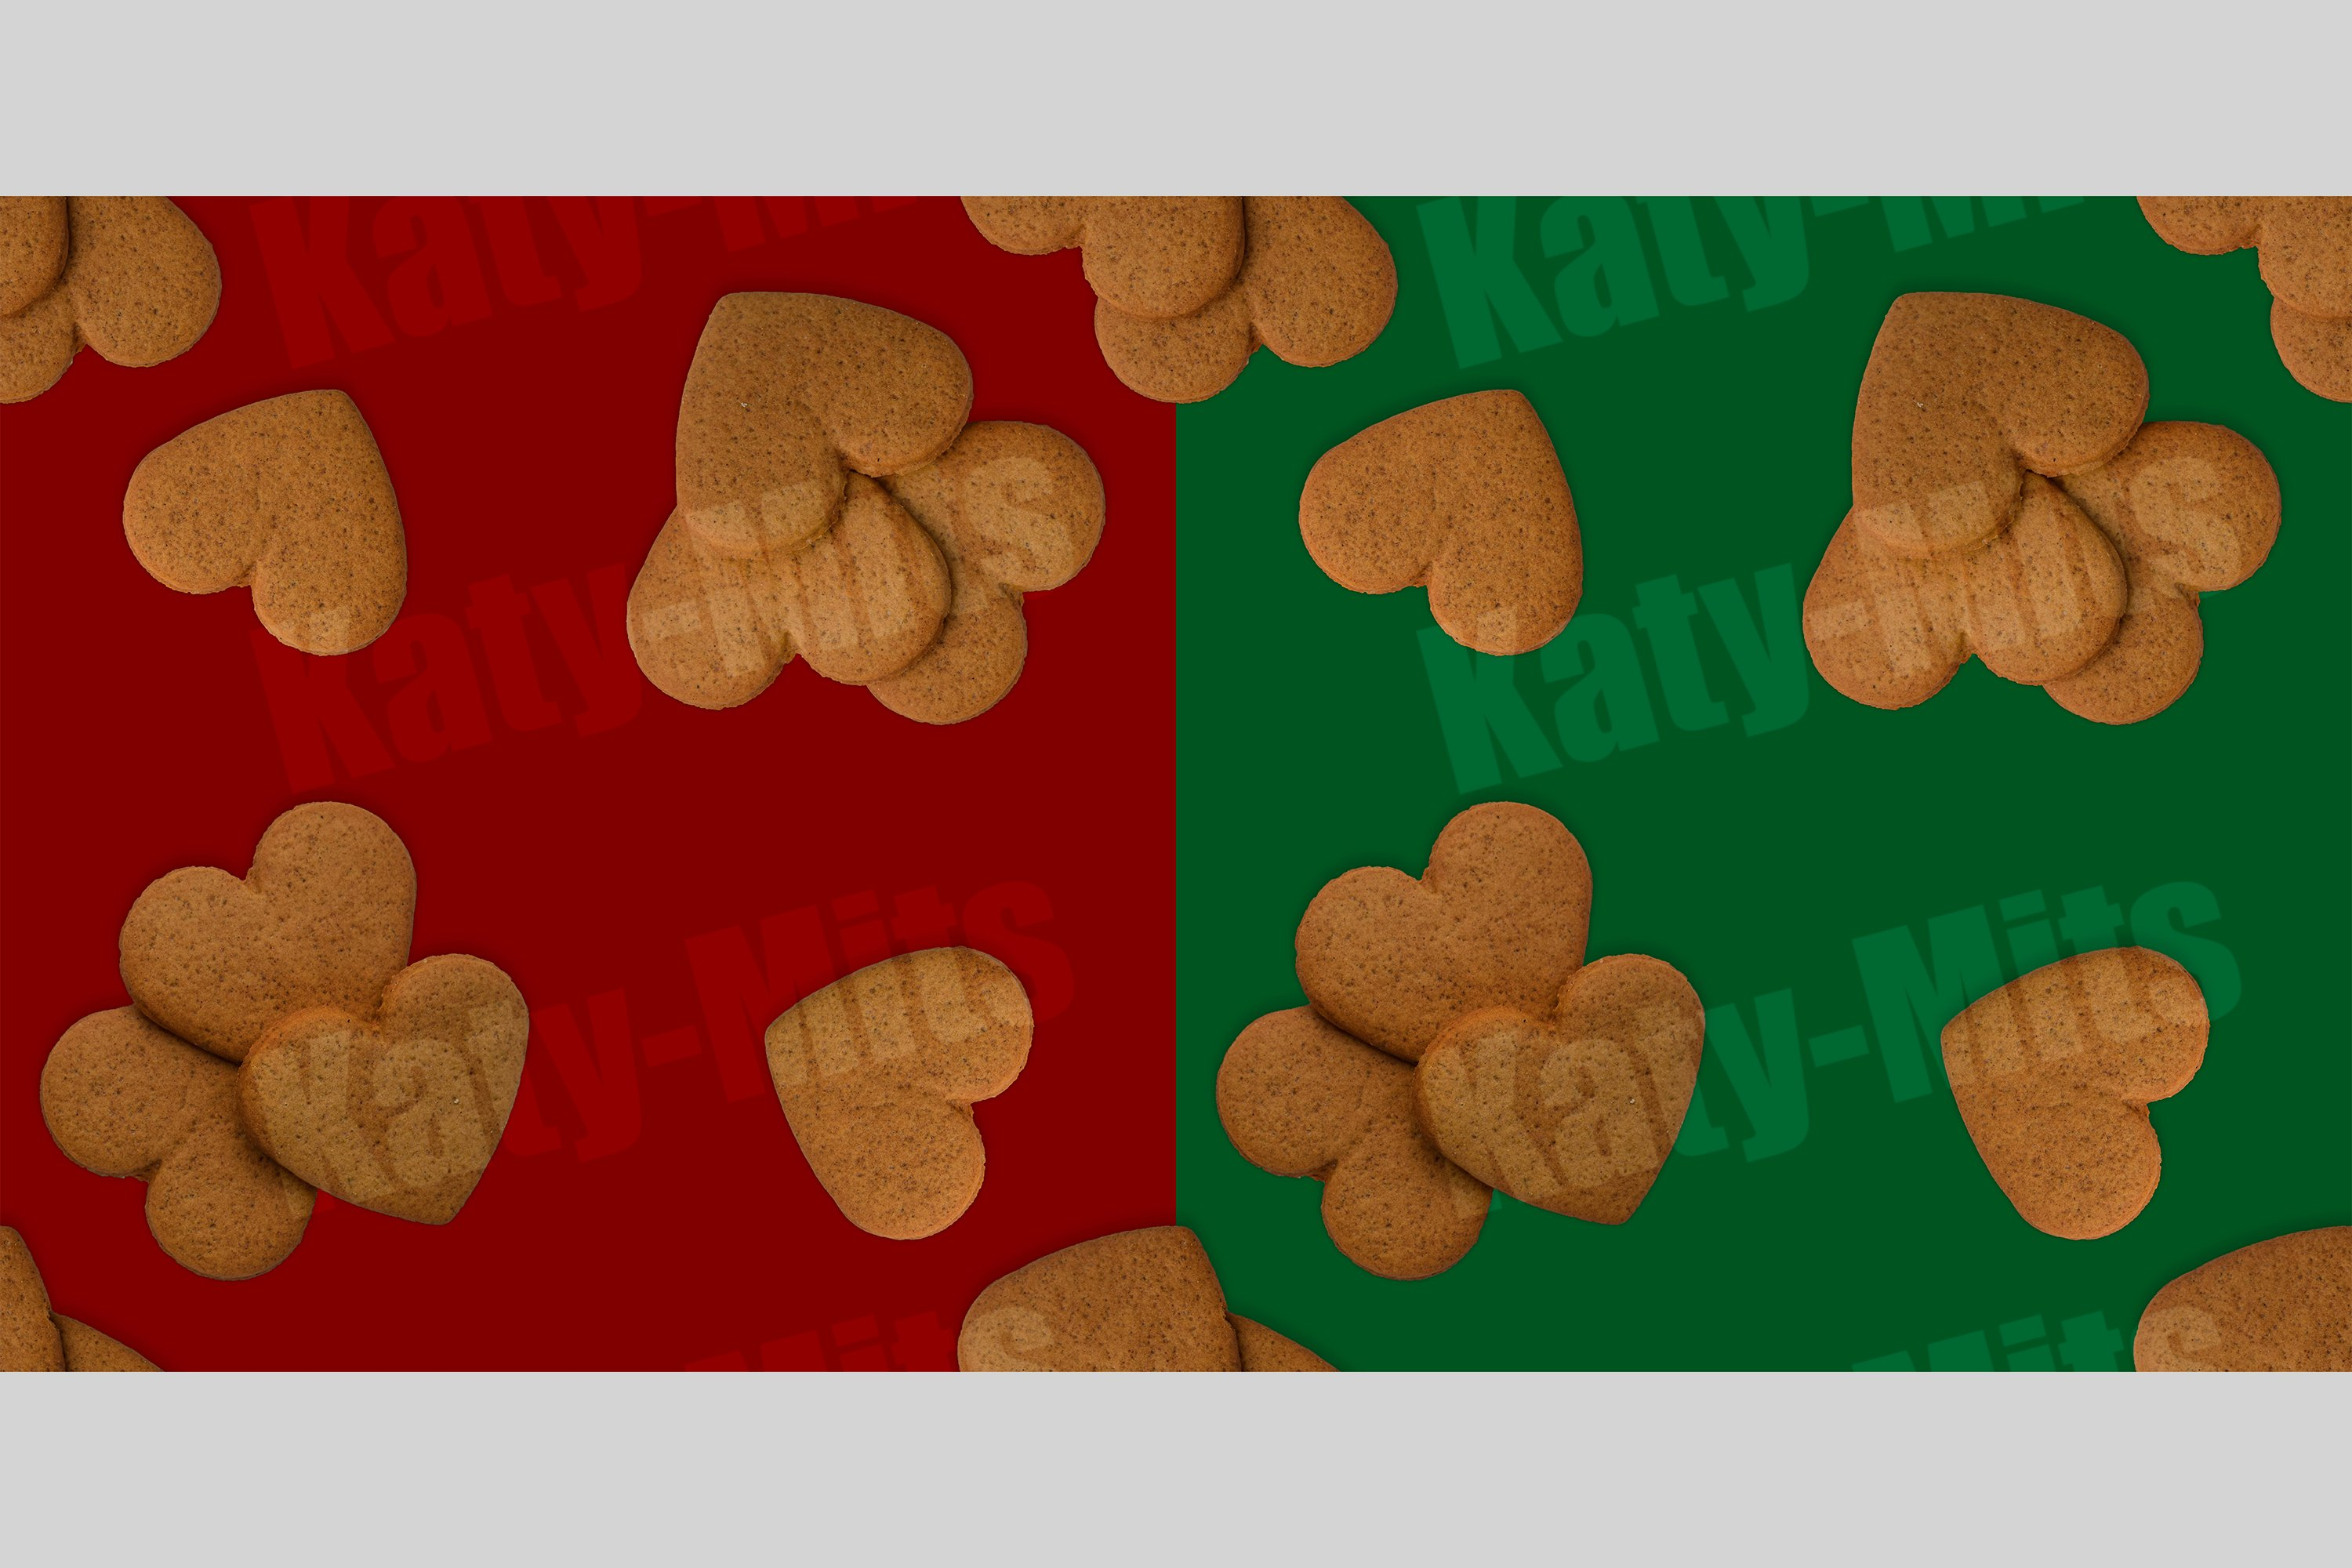 green and red seamless patterns of heart shaped cookies example image 1